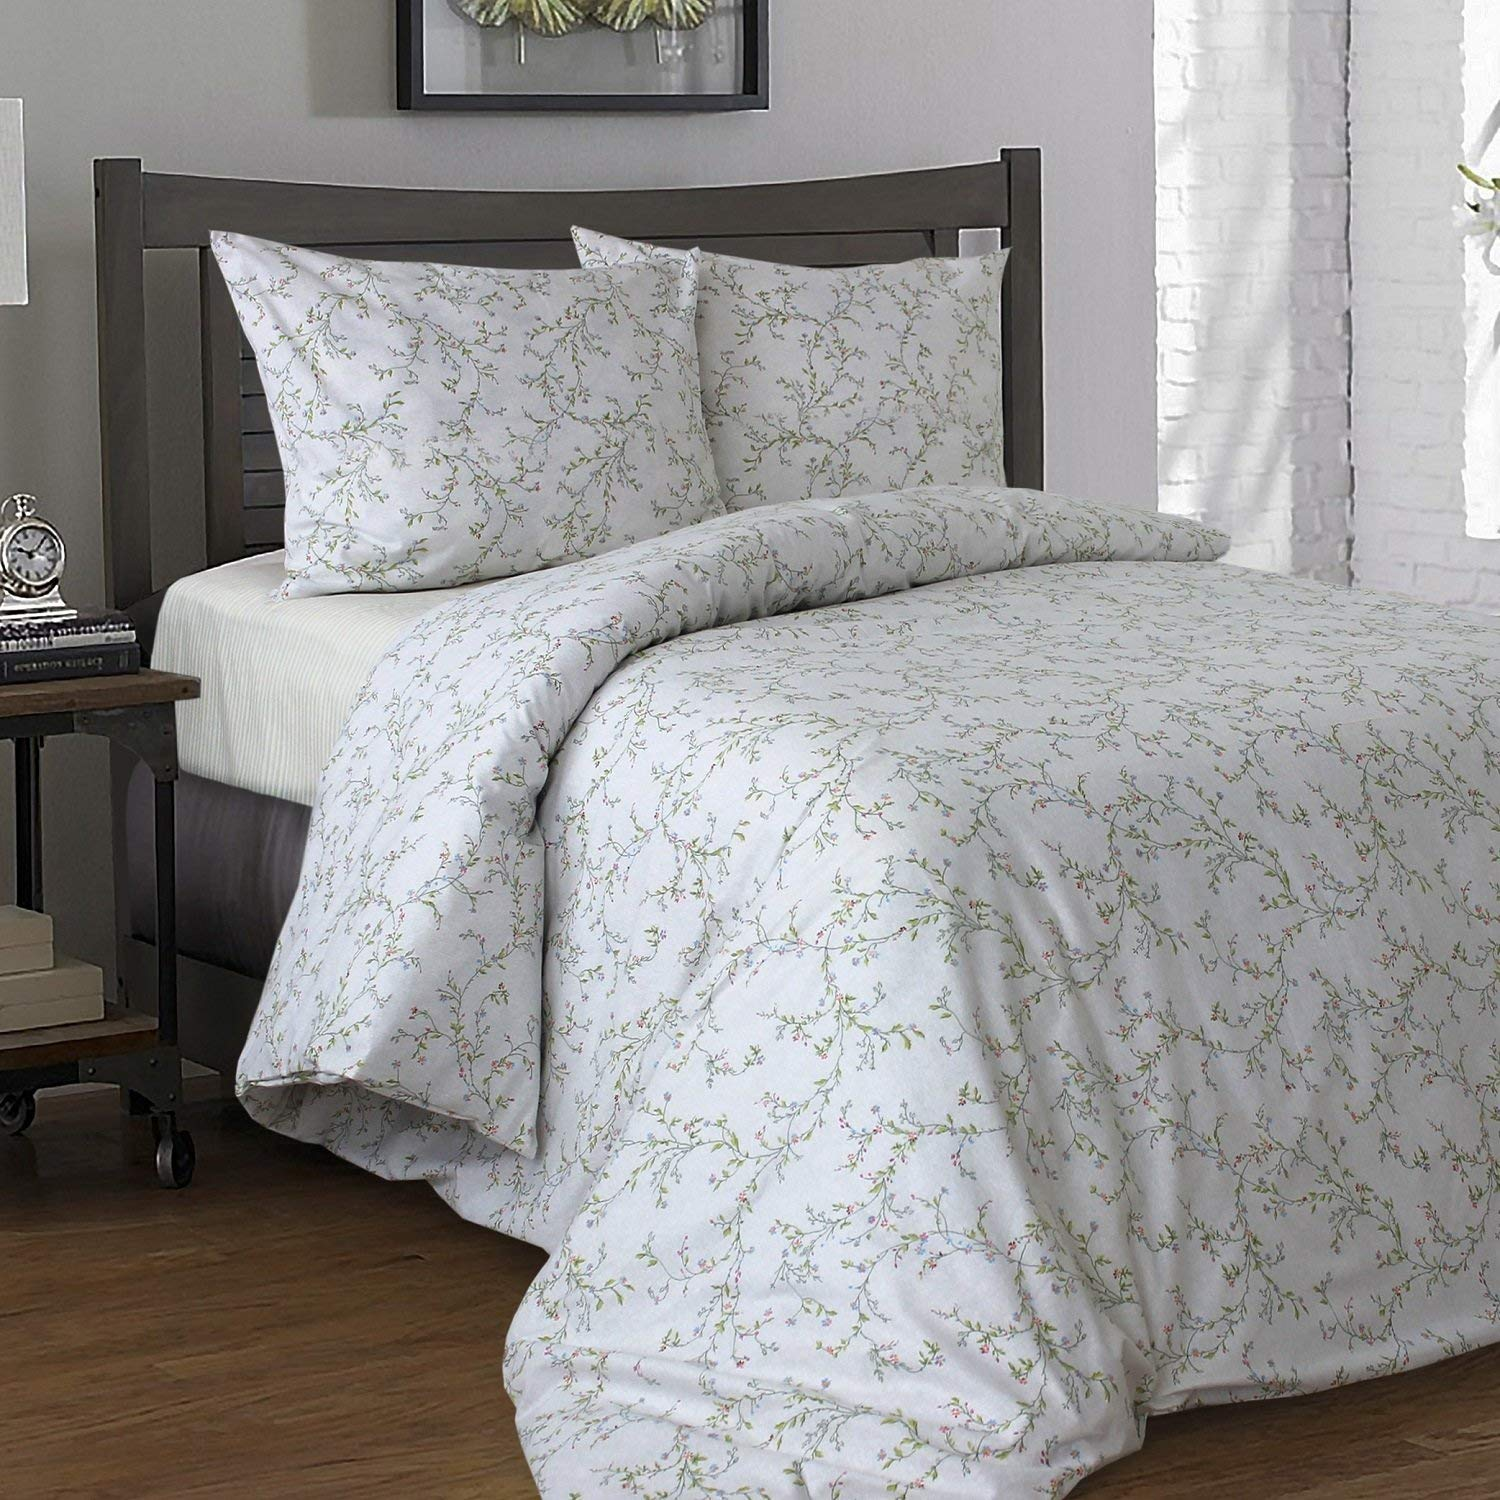 Deep Fitted Sheets Queen Size Buy Likeahome Floral Cotton Duvet Cover Set Fitted Sheet 15